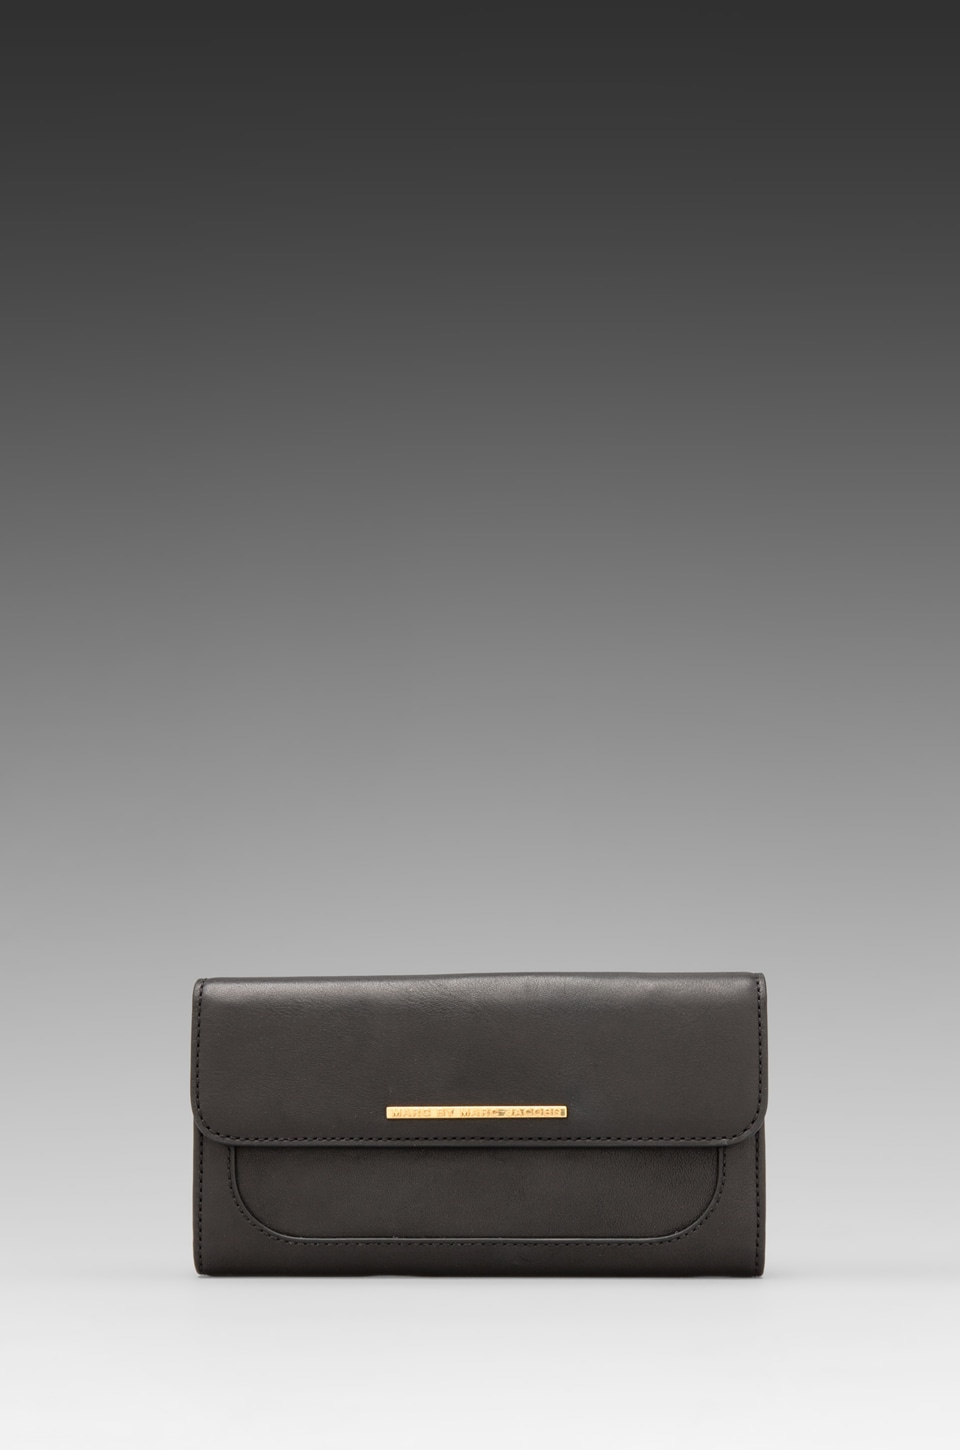 Marc by Marc Jacobs Get A Grip Continental Wallet in Black